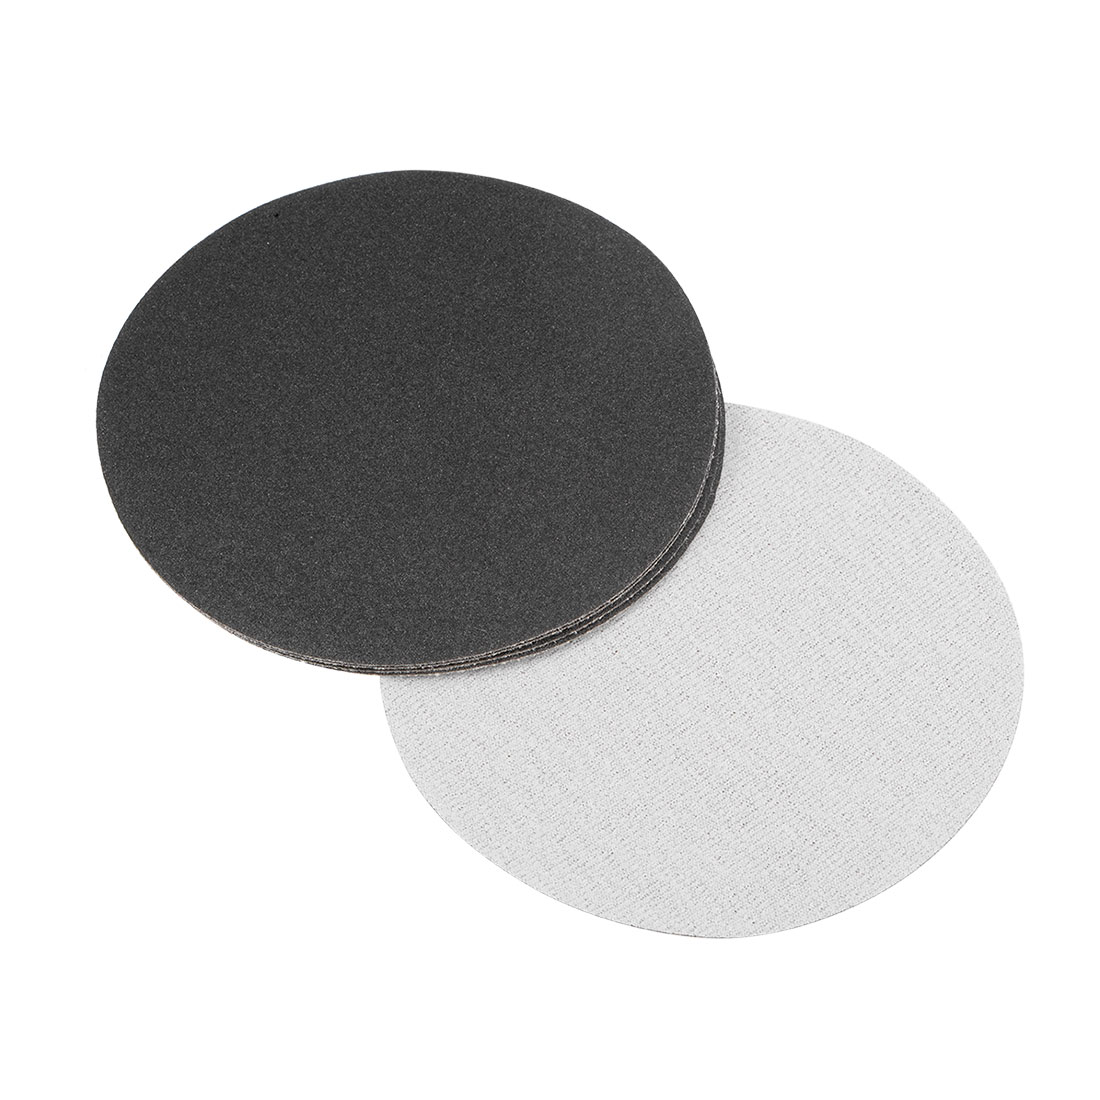 5 inch Wet Dry Discs 180 Grit Hook and Loop Sanding Disc Silicon Carbide 5pcs